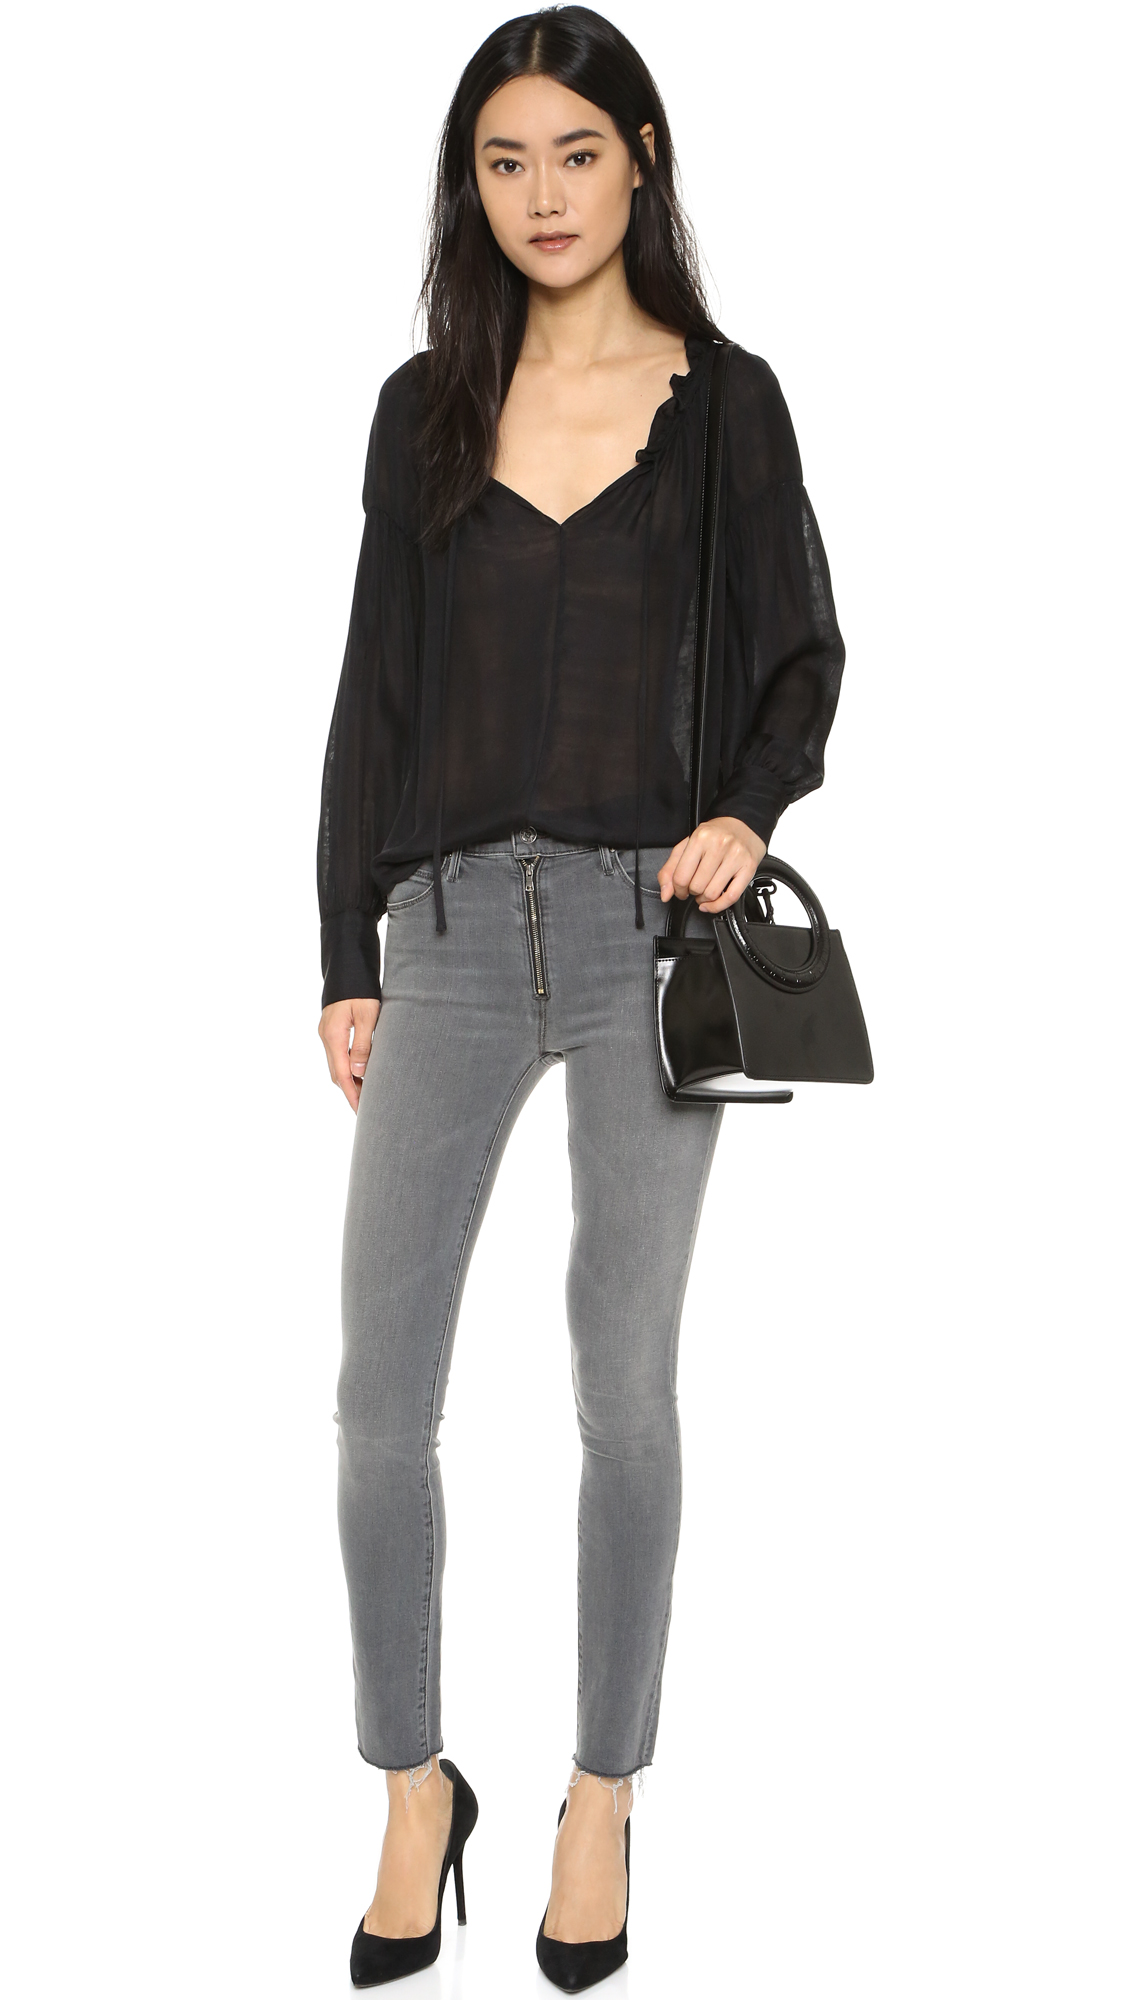 ba1137adc7b MOTHER The Fly Stunner Fray Jeans